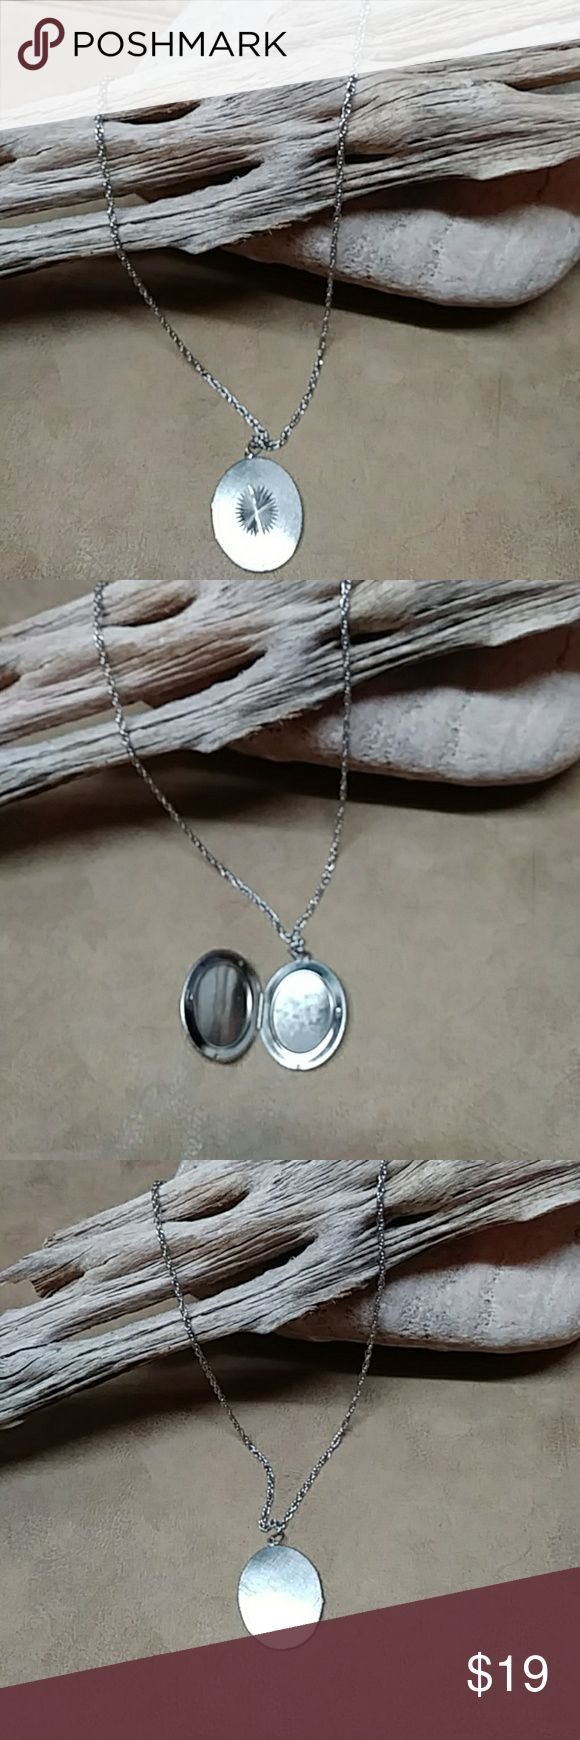 "Vintage 24 3/4"" Silver Locket Necklace Very cool necklace with working locket. Excellent condition. I like it especially because it can be dressed up OR down. Super cute! Jewelry Necklaces"